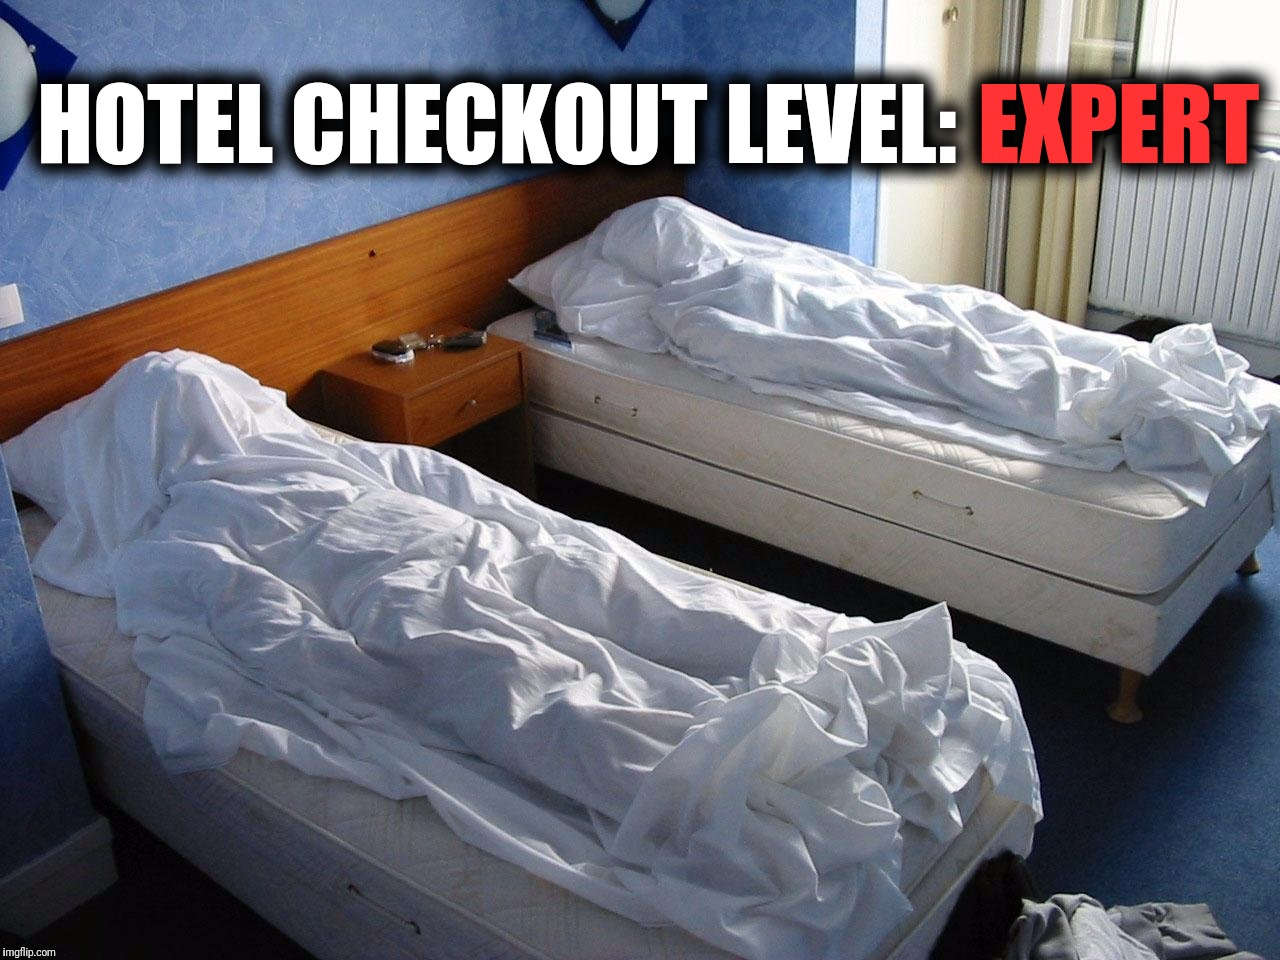 Next time you check out of a hotel, use the sheets, pillows, spare linens like this.  Don't forget to leave a tip. | HOTEL CHECKOUT LEVEL: EXPERT | image tagged in memes,hotel,checkout,level expert | made w/ Imgflip meme maker